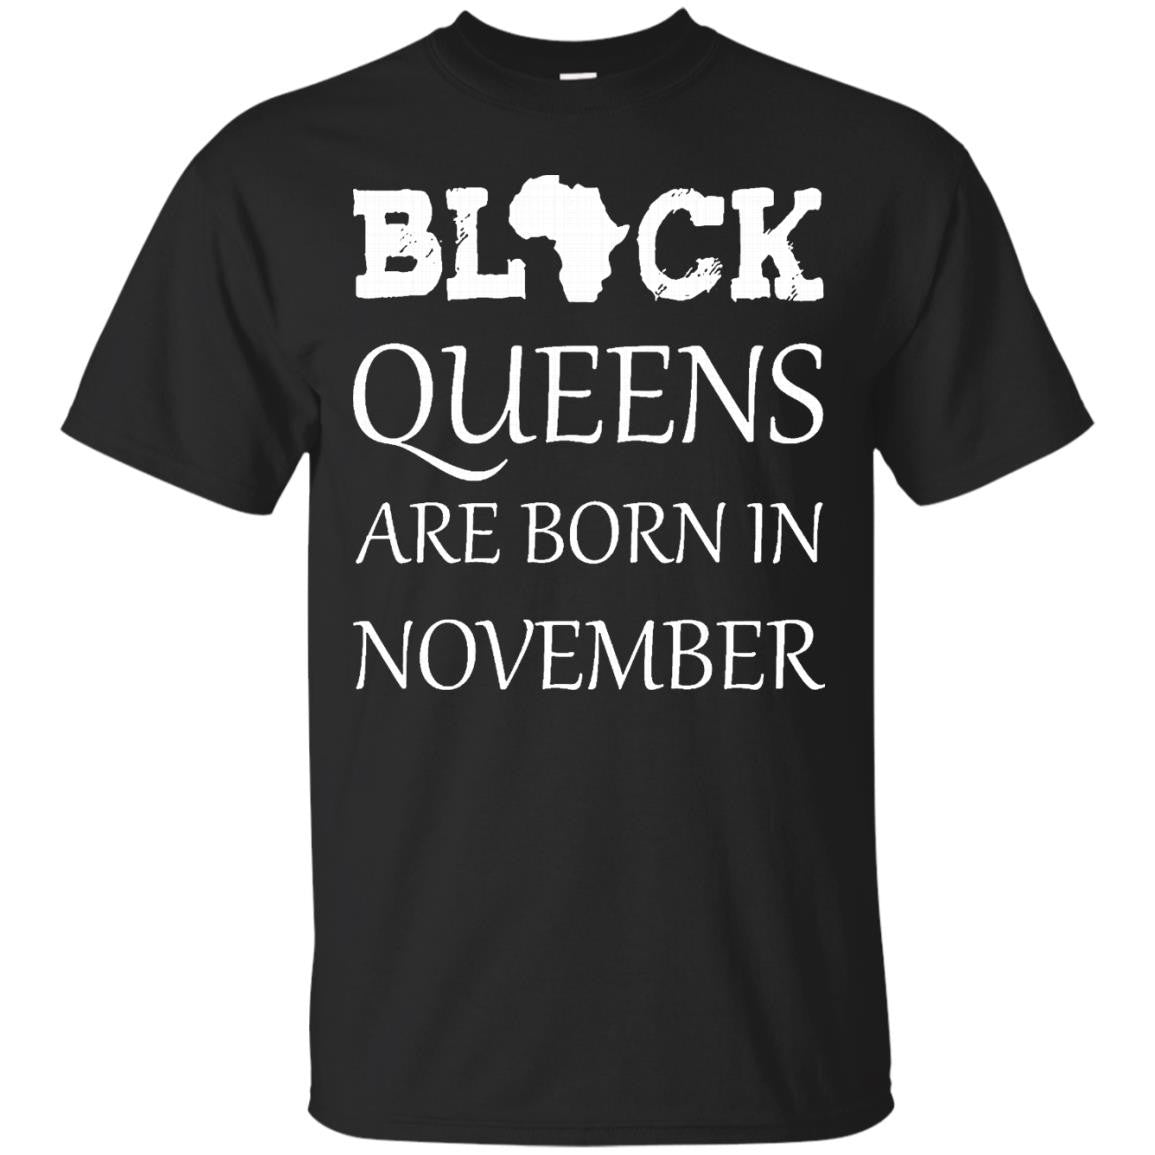 Black queen t shirt - Women Black Queen T Shirts Black Queens Are Born In November Hoodies Sweatshirts